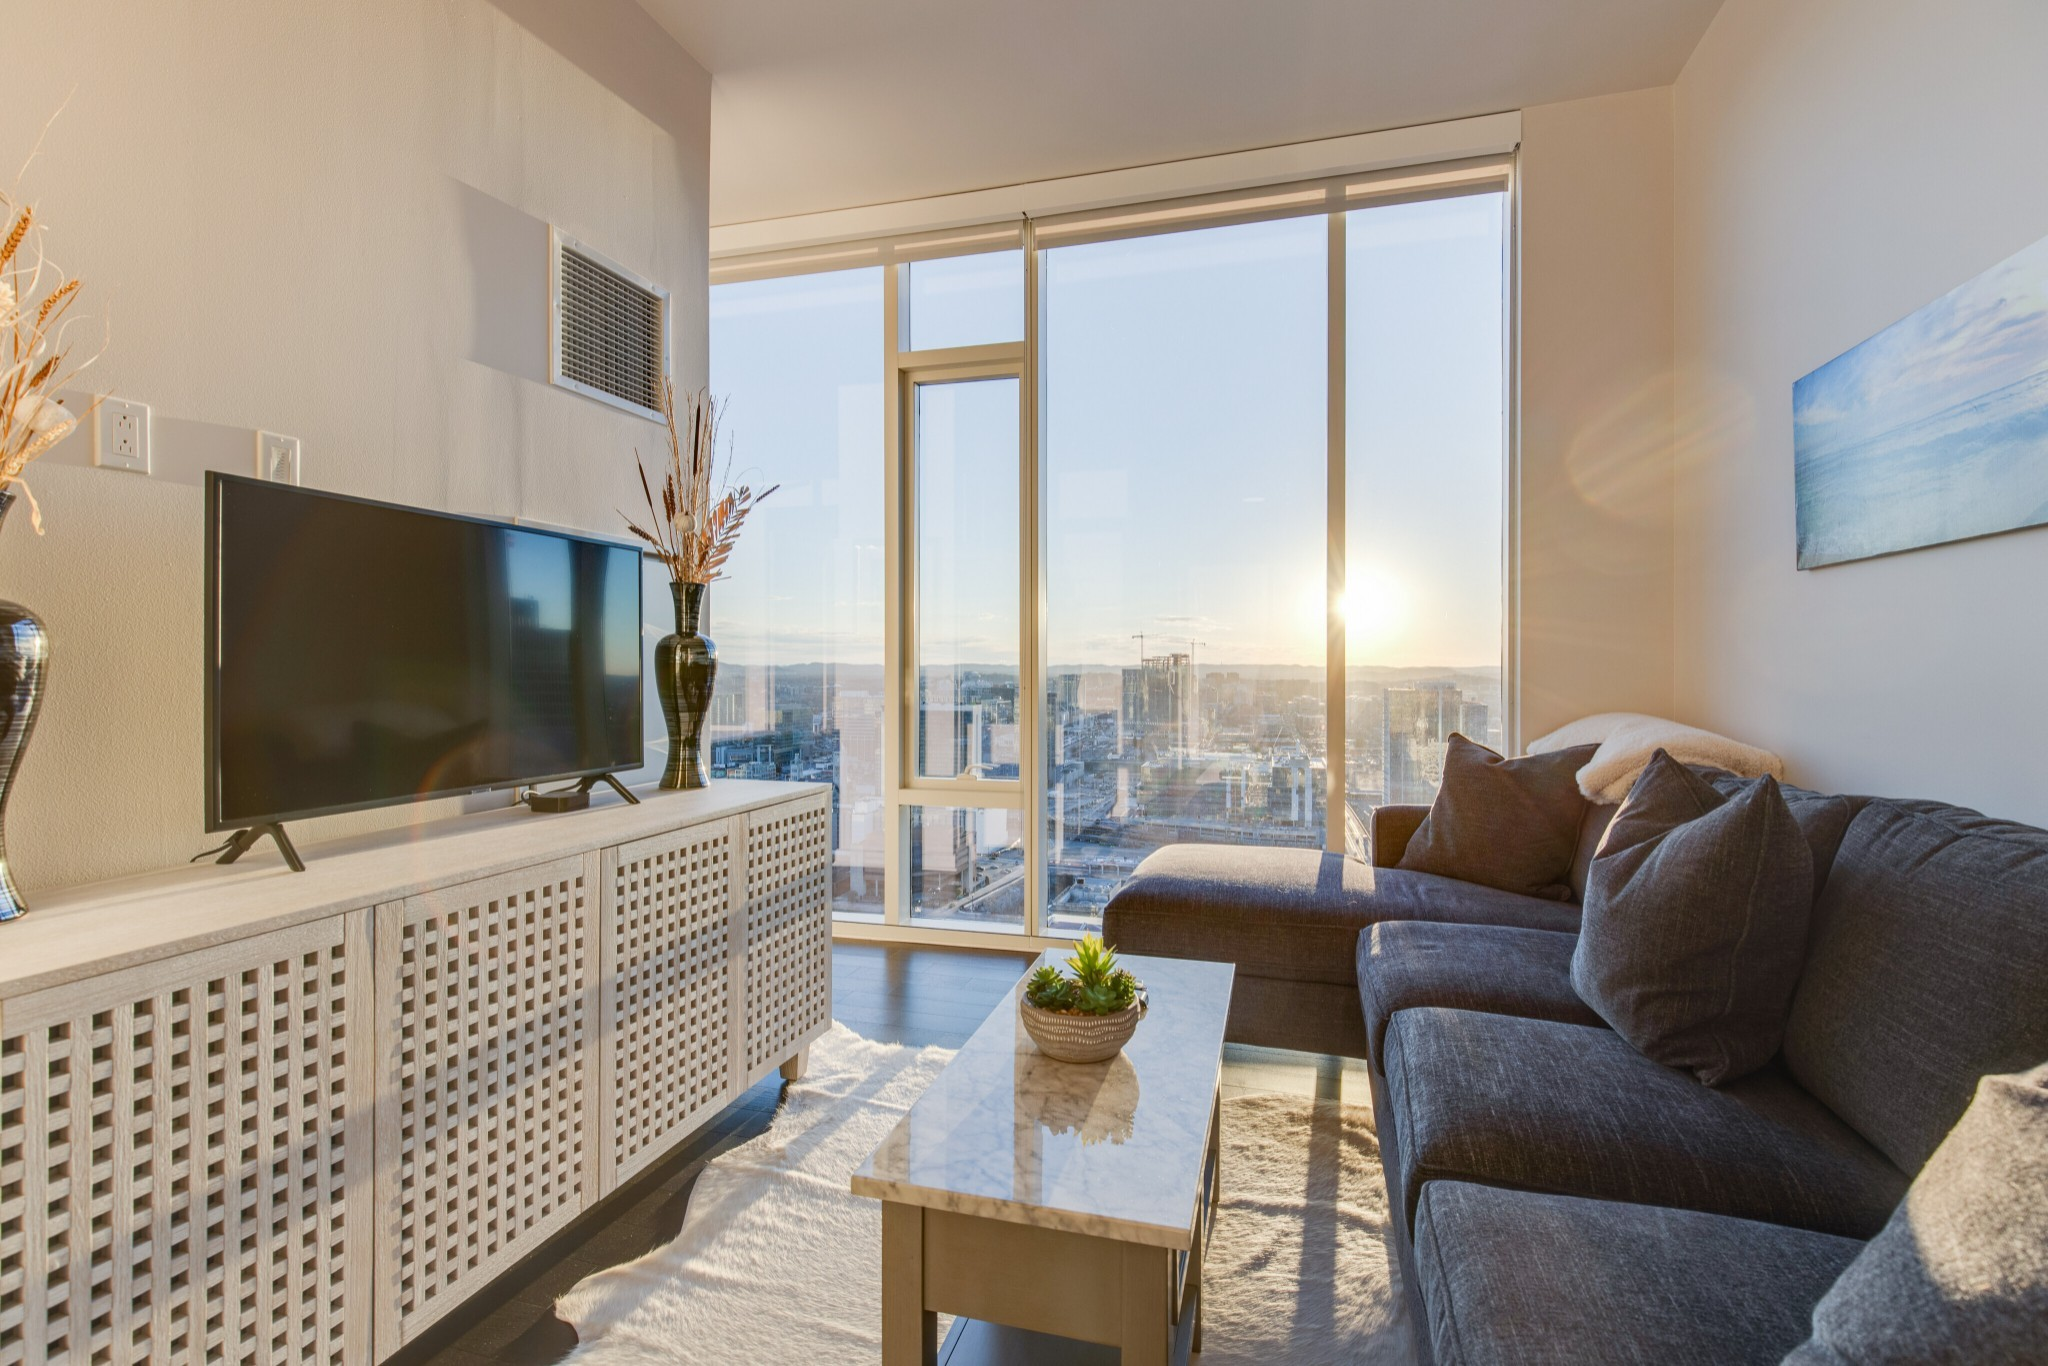 Furnishings and sunset views over the city included!